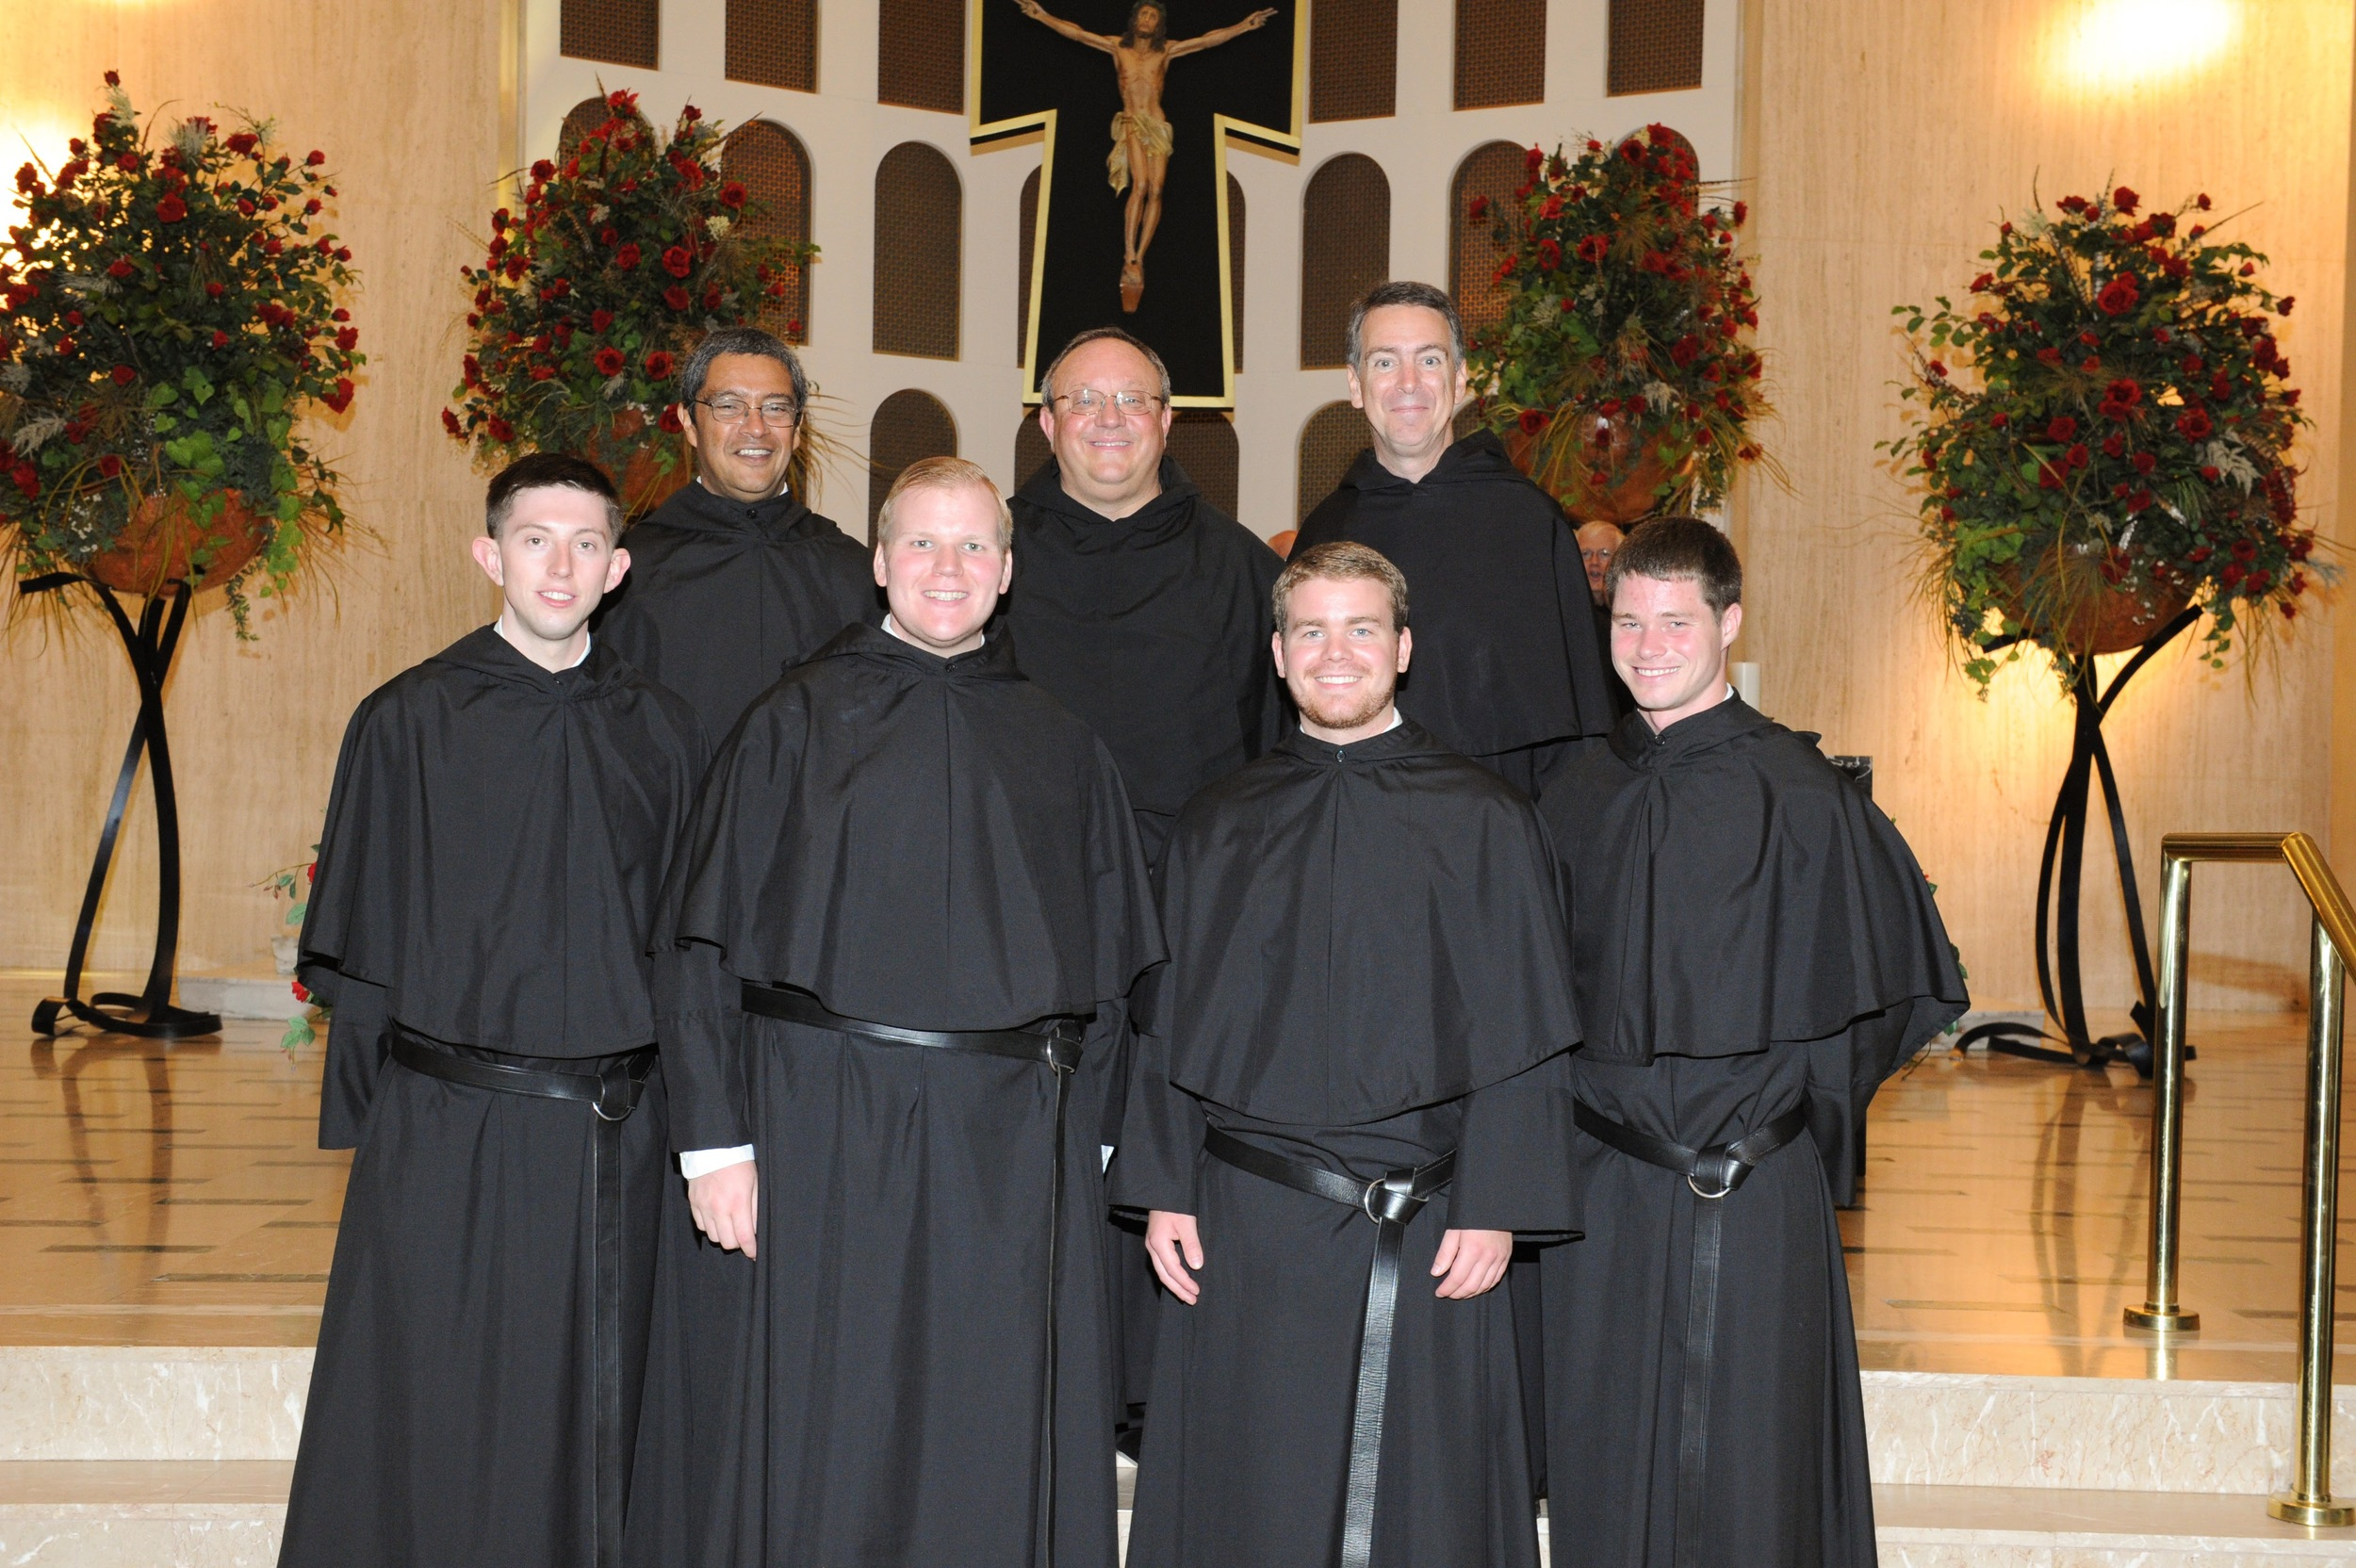 Fr. Bernie Scianna, O.S.A., with newly professed friars of the Midwest Province of Augustinians